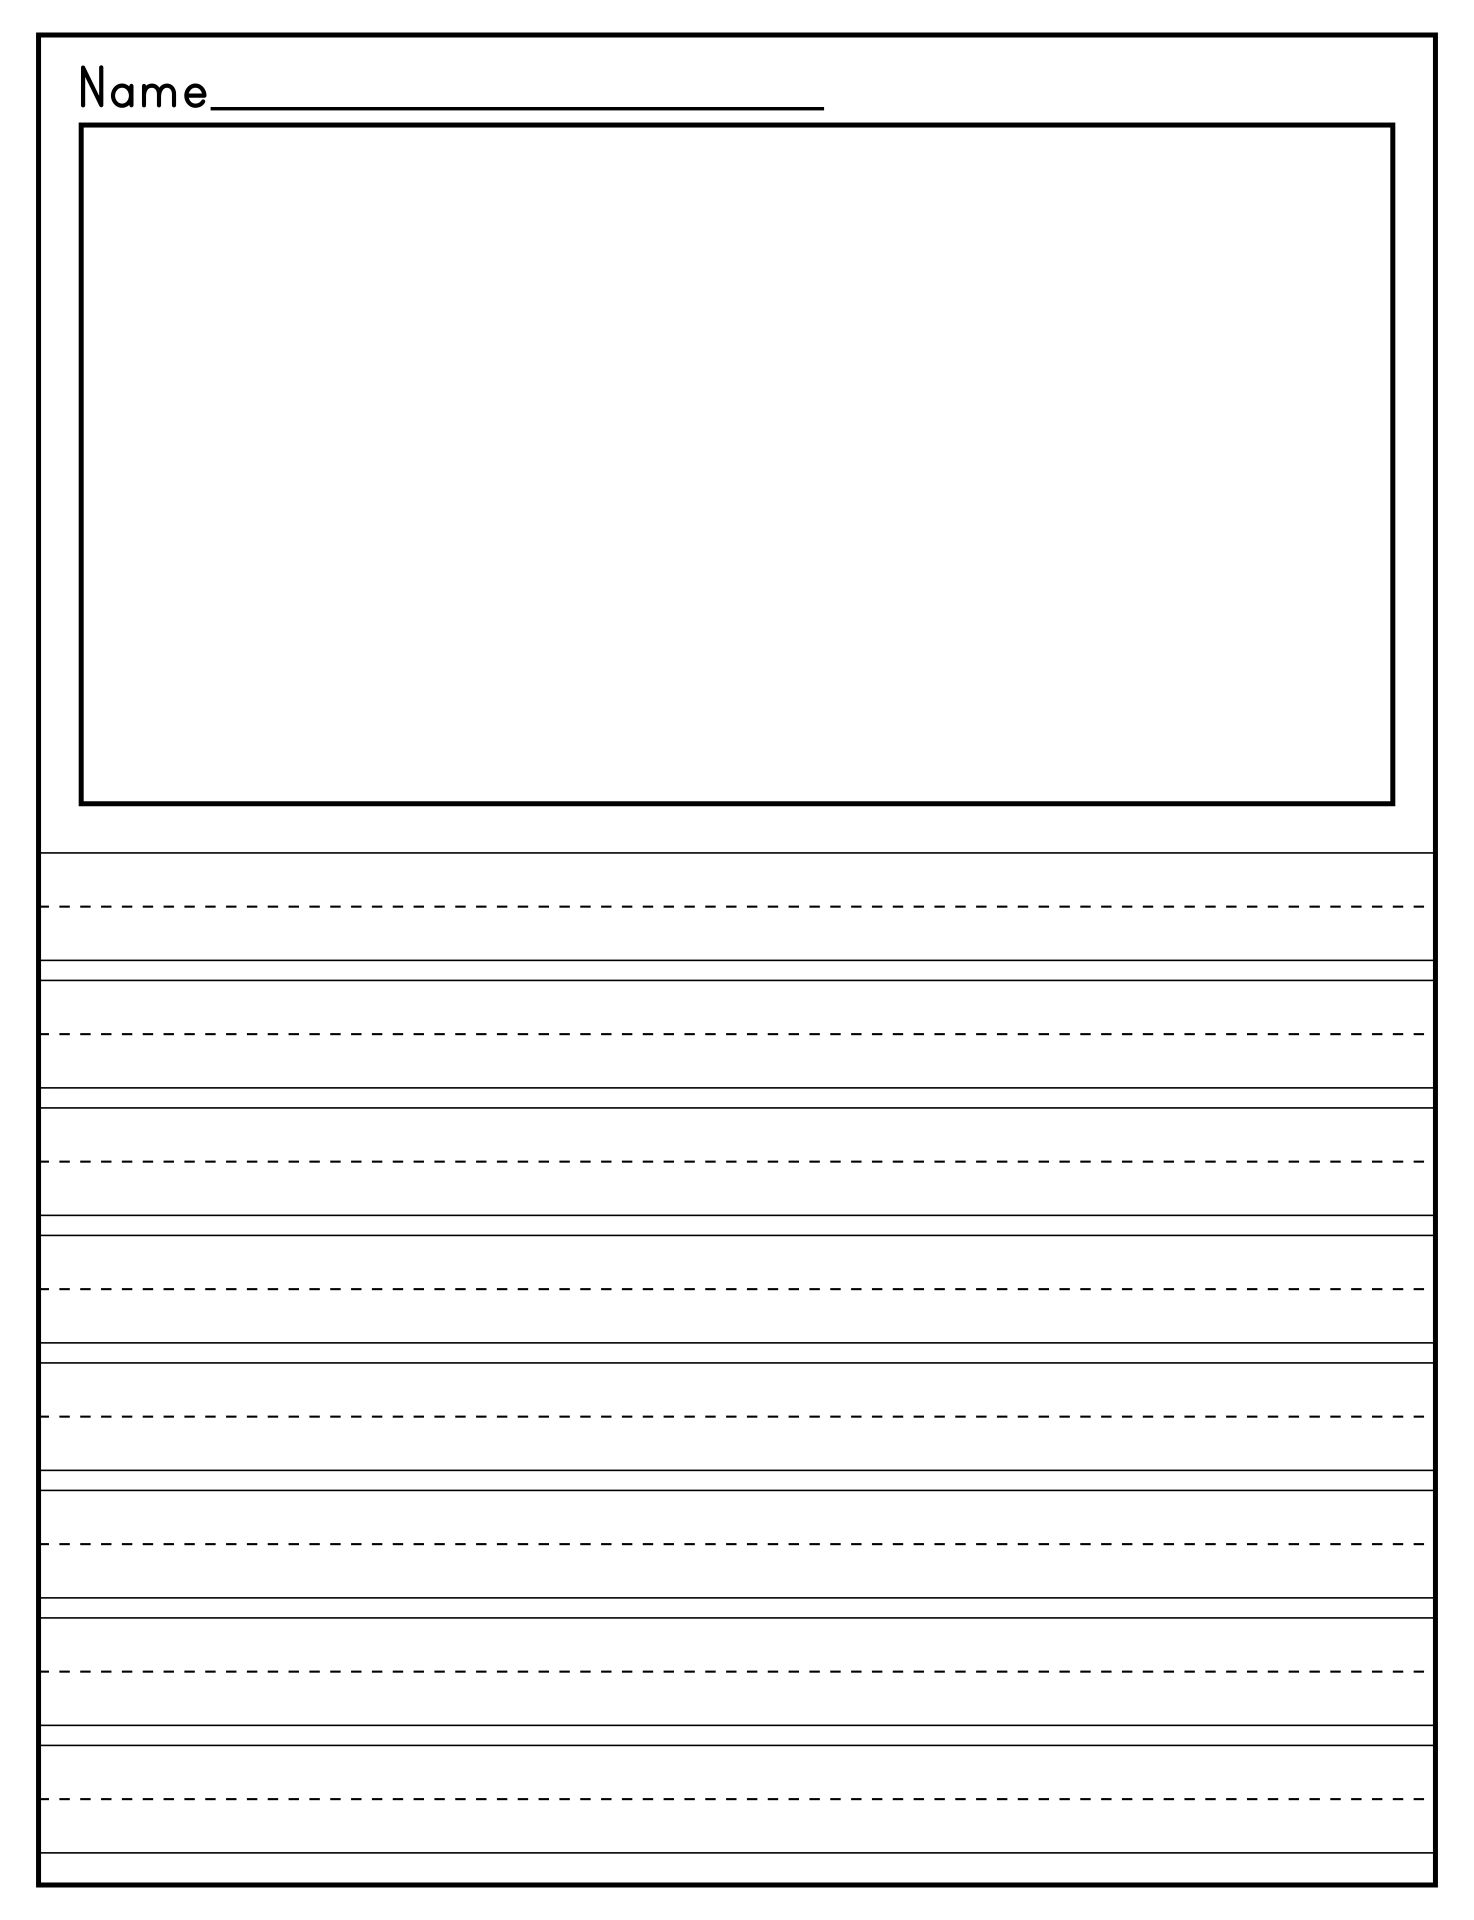 7 Best Printable Primary Writing Paper Template - Printablee.com